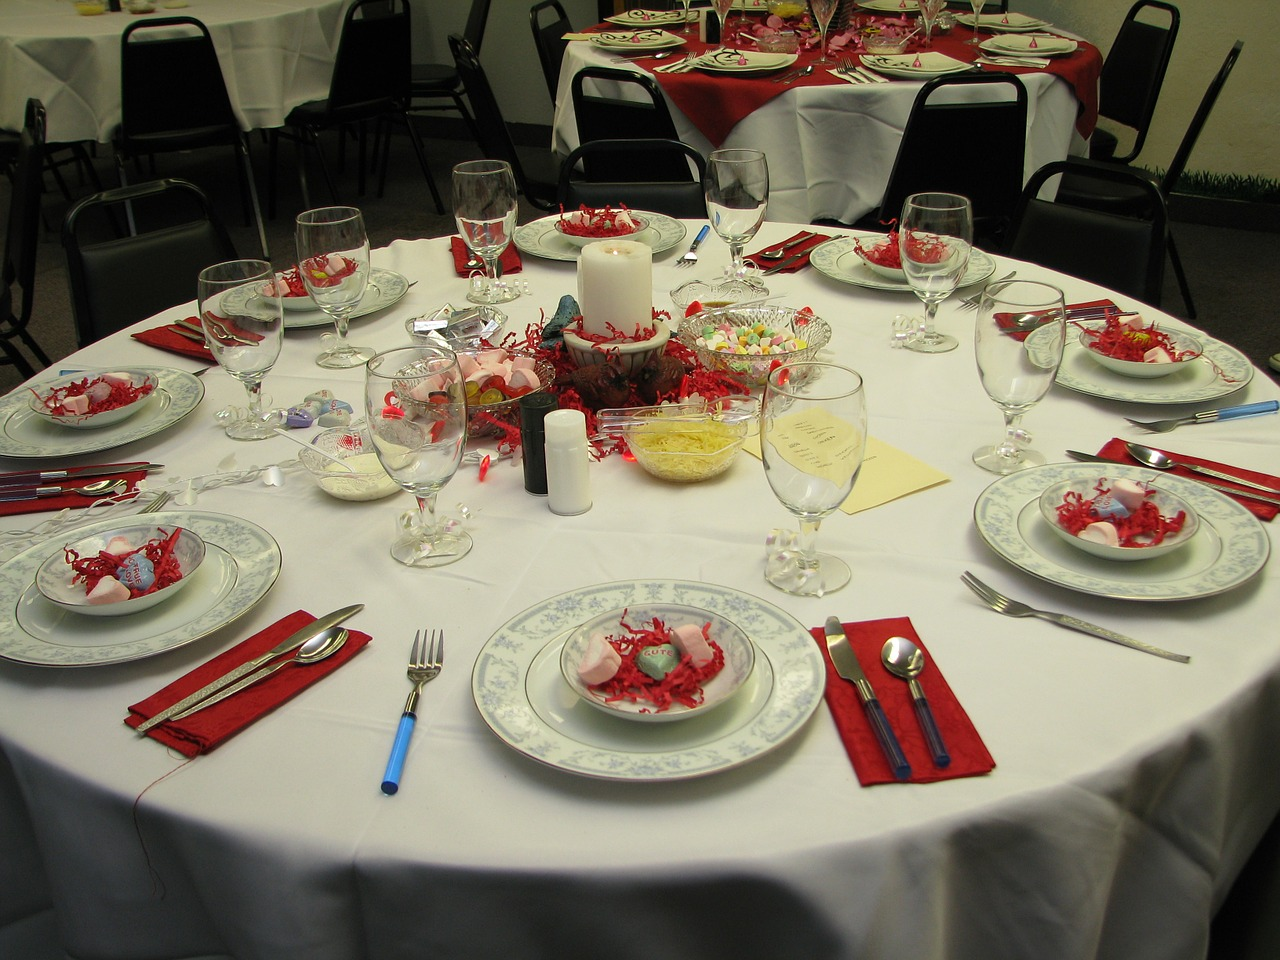 banquet-table-red.jpg